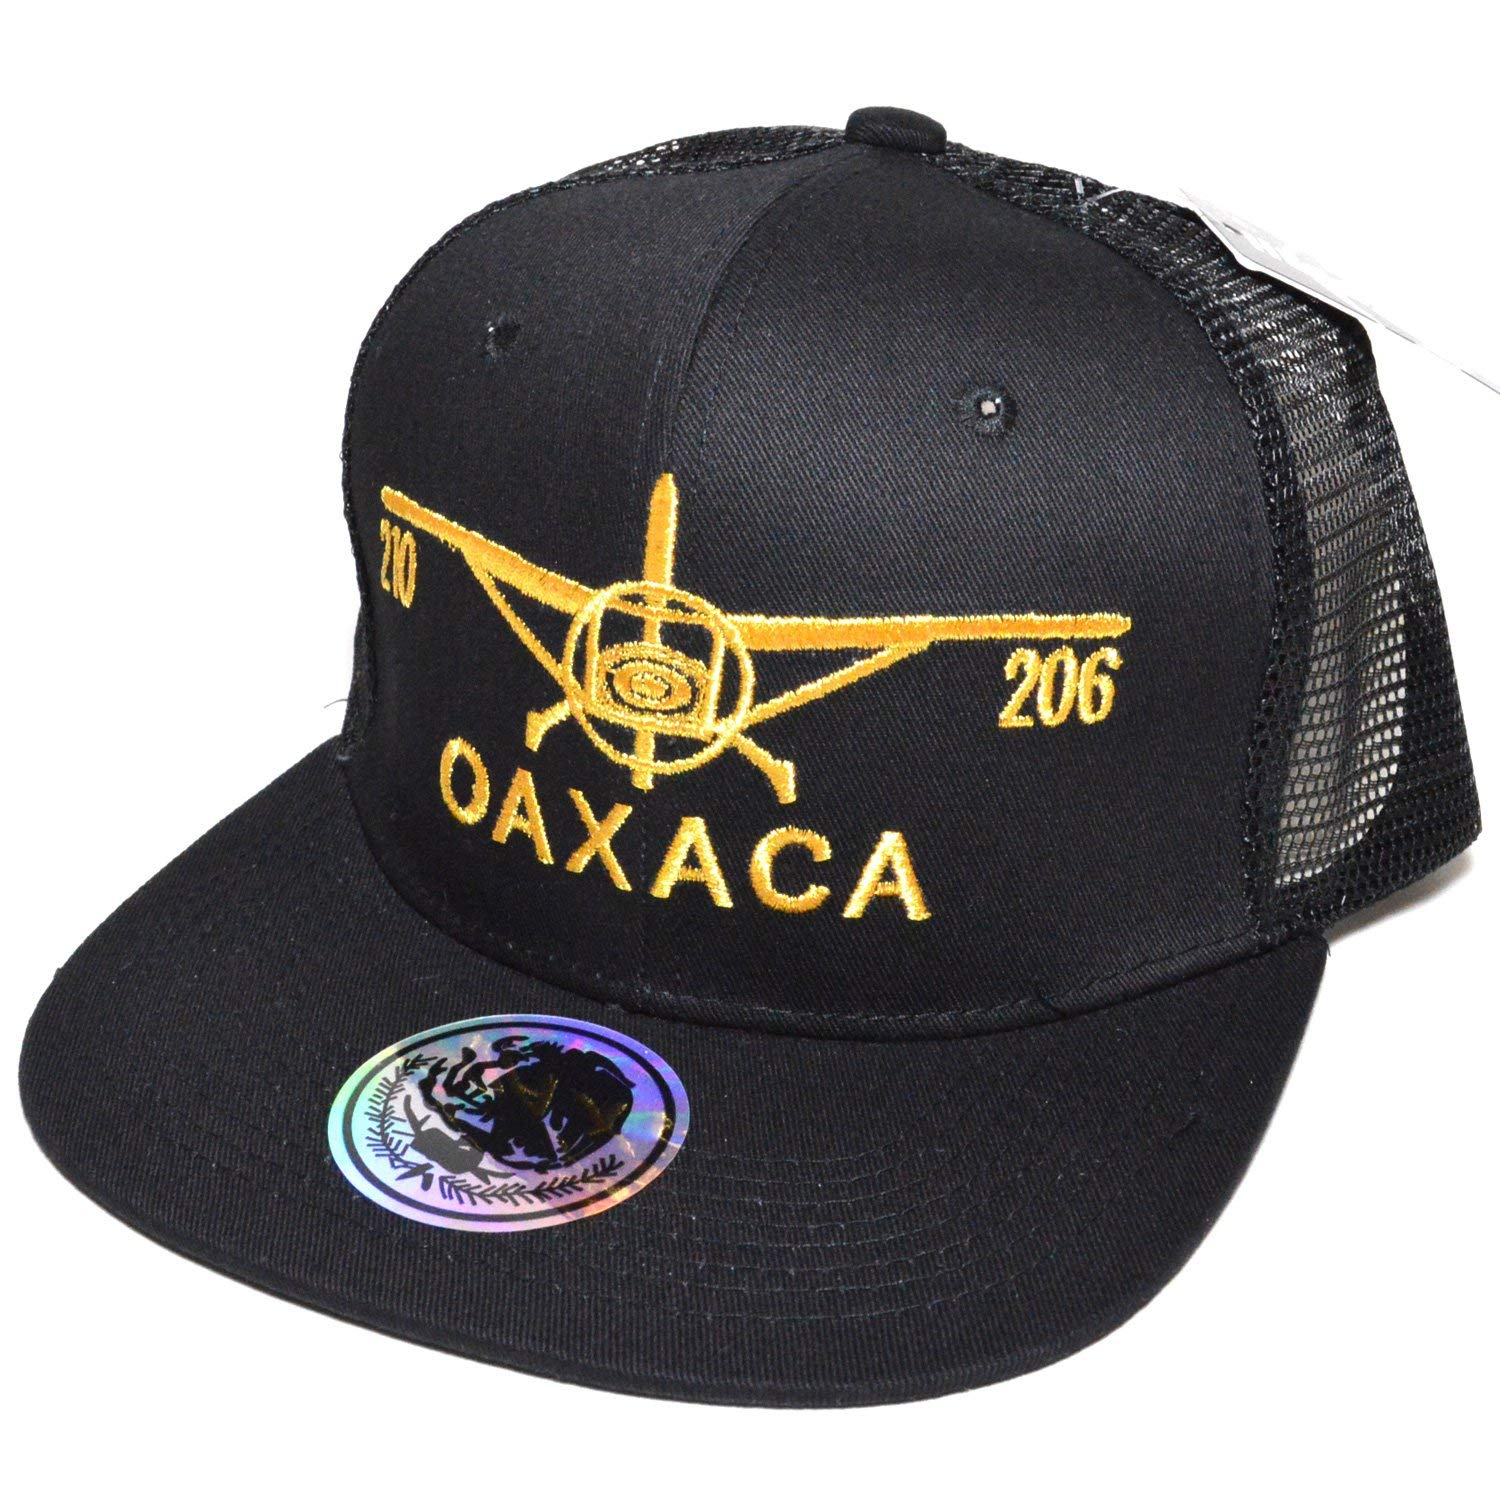 e73cd75de5309d Get Quotations · Mexico City Embroidered #04 Snapback Flat Visor Trucker  Style Cap Baseball Hat